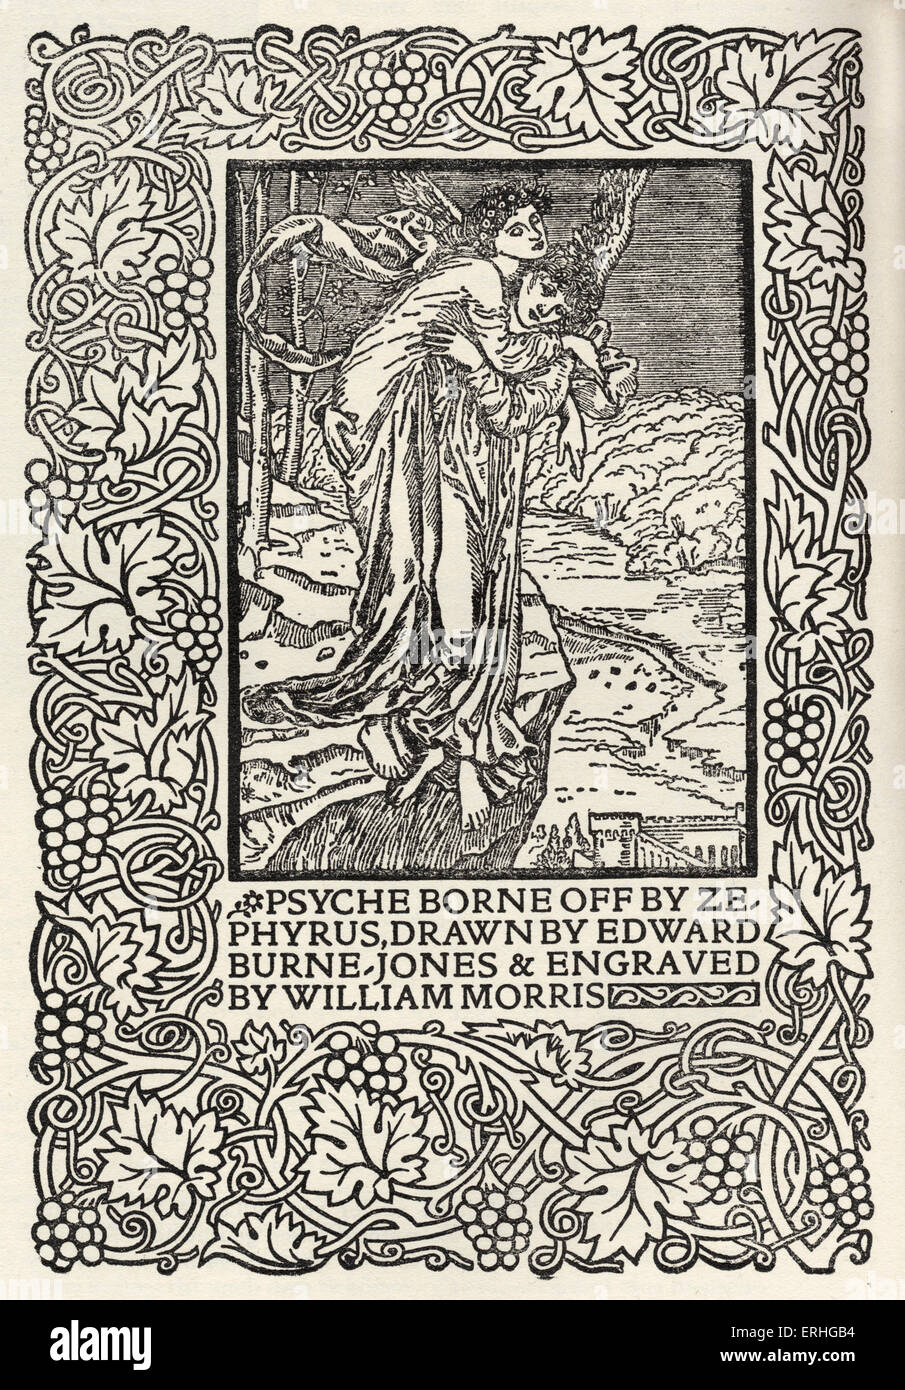 Psyche borne off by Zepyrys', engraving from William Morris' . Illustration from Manifesto for the founding of Kelmscott Stock Photo